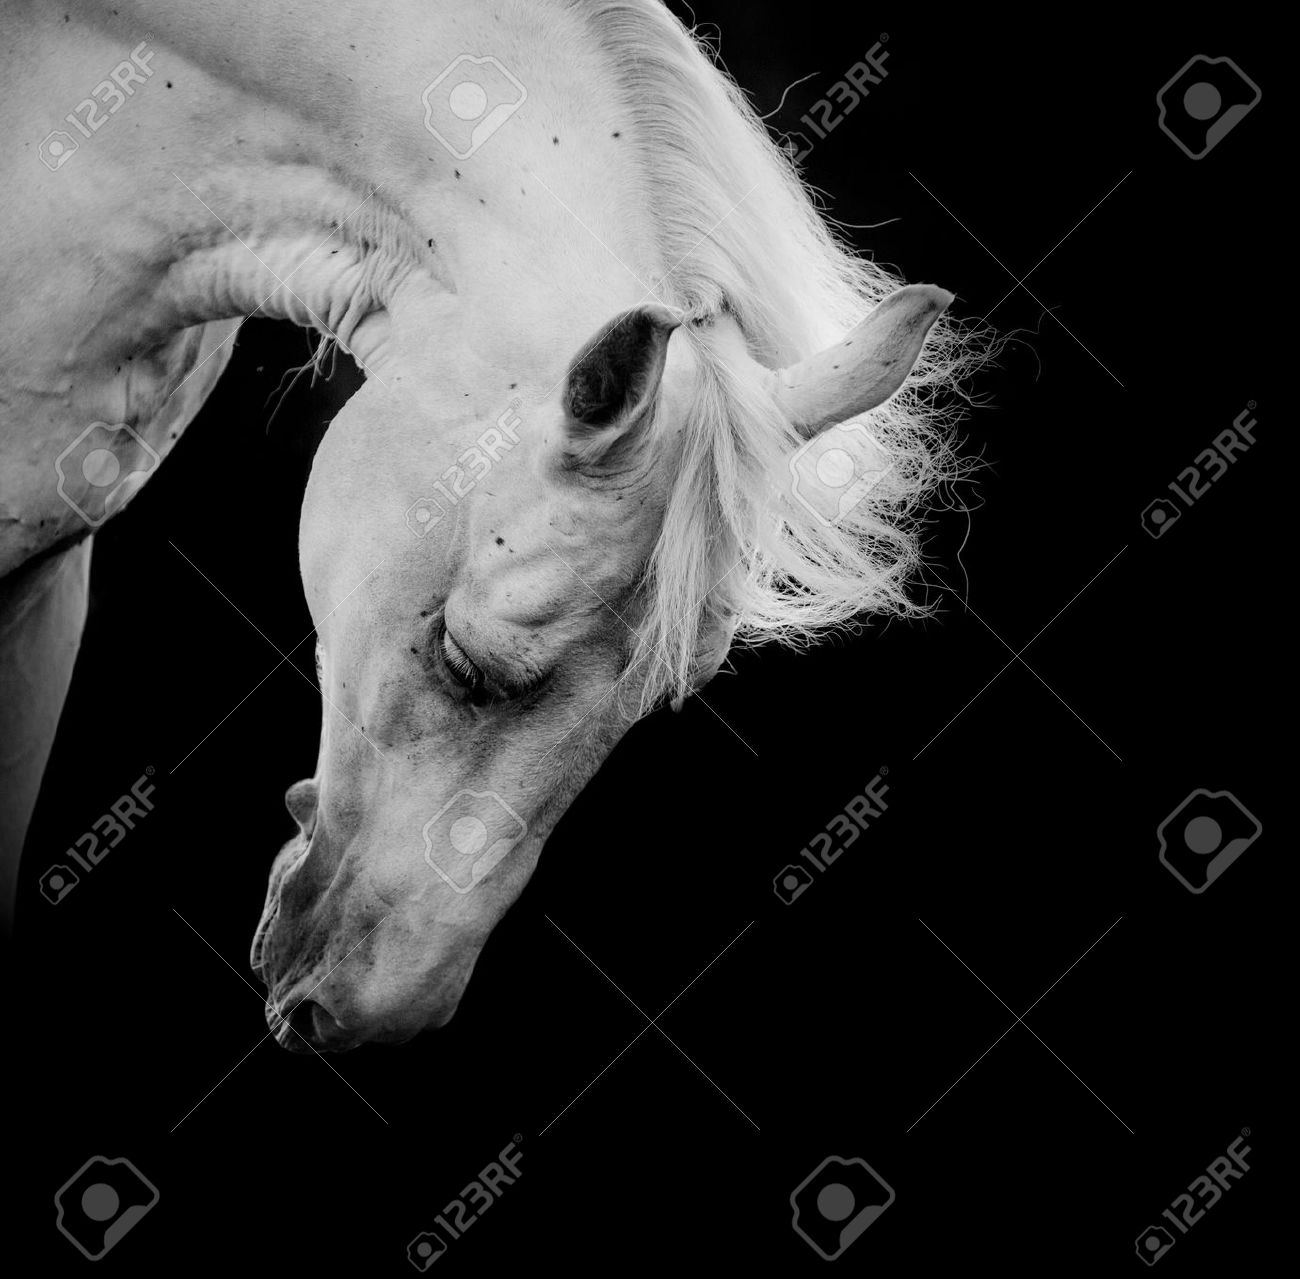 White Horse On A Black Stock Photo Picture And Royalty Free Image Image 22881928